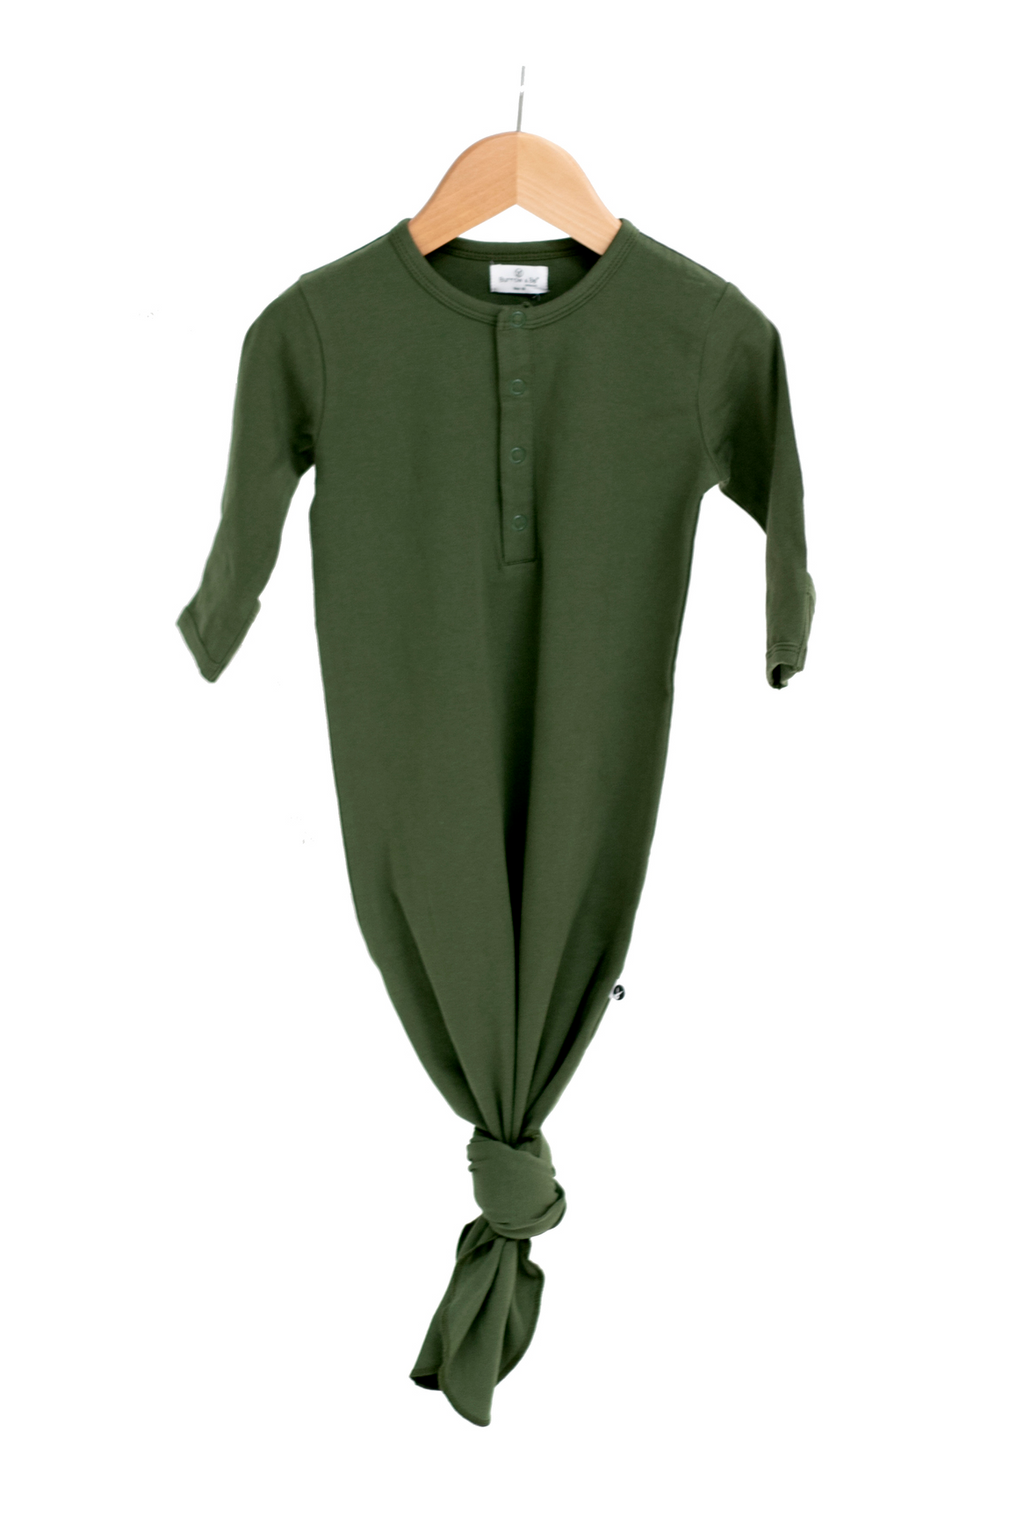 BURROW & BE - BABY SLEEP GOWN - PINE - Tempted Kensington